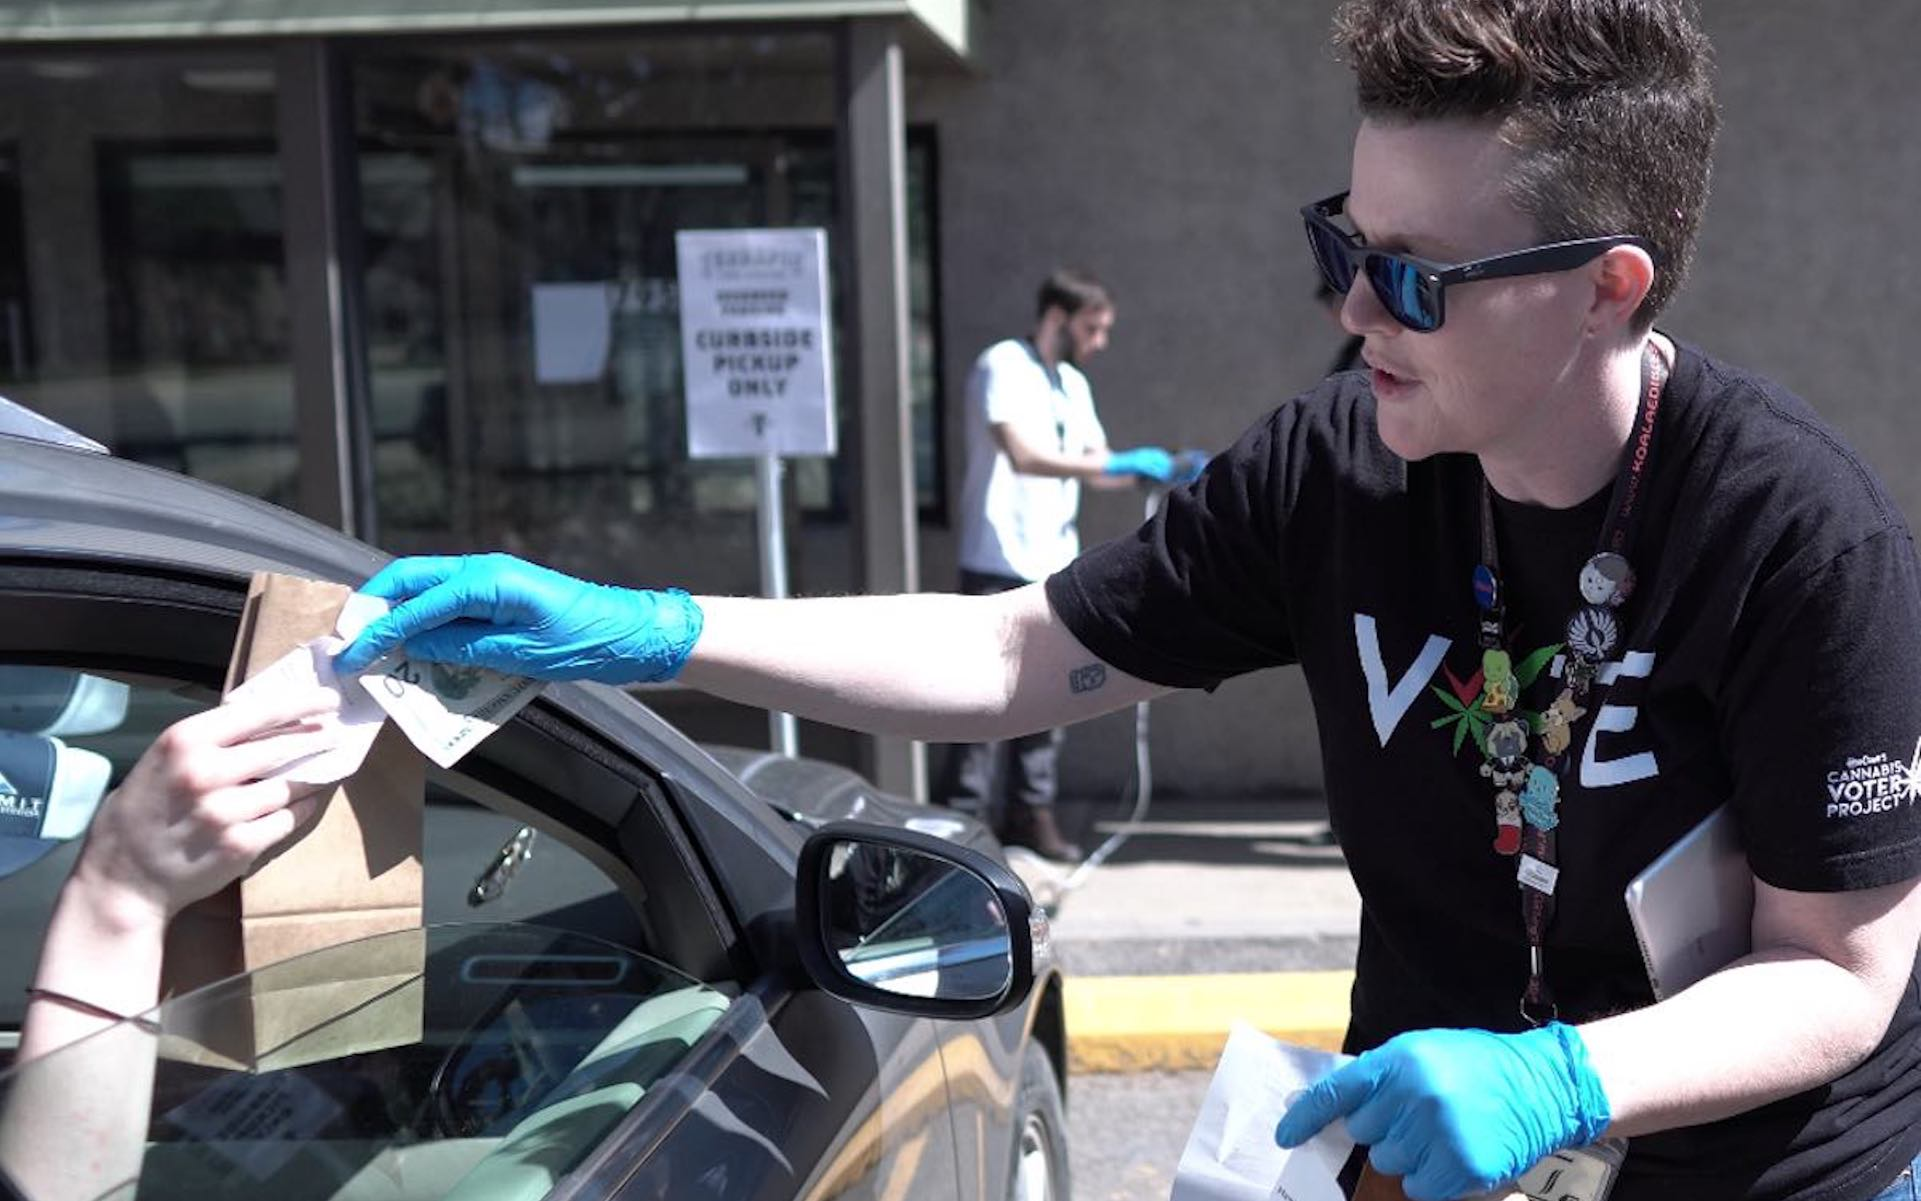 A Terrapin Care Station employee in Colorado conducts curbside pickup as an essential business during COVID-19 outbreak. (Courtesy Terrapin Care Station)